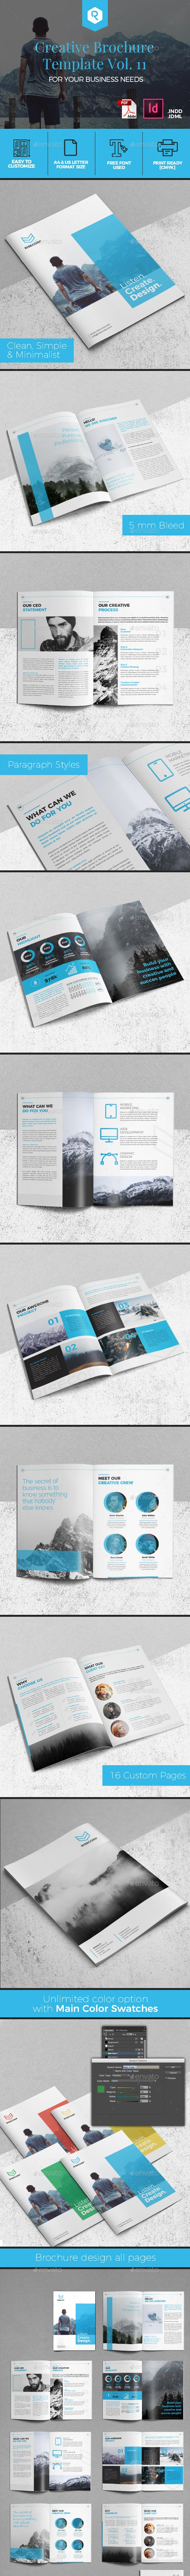 Creative Brochure Template Vol. 11 - Corporate Brochures